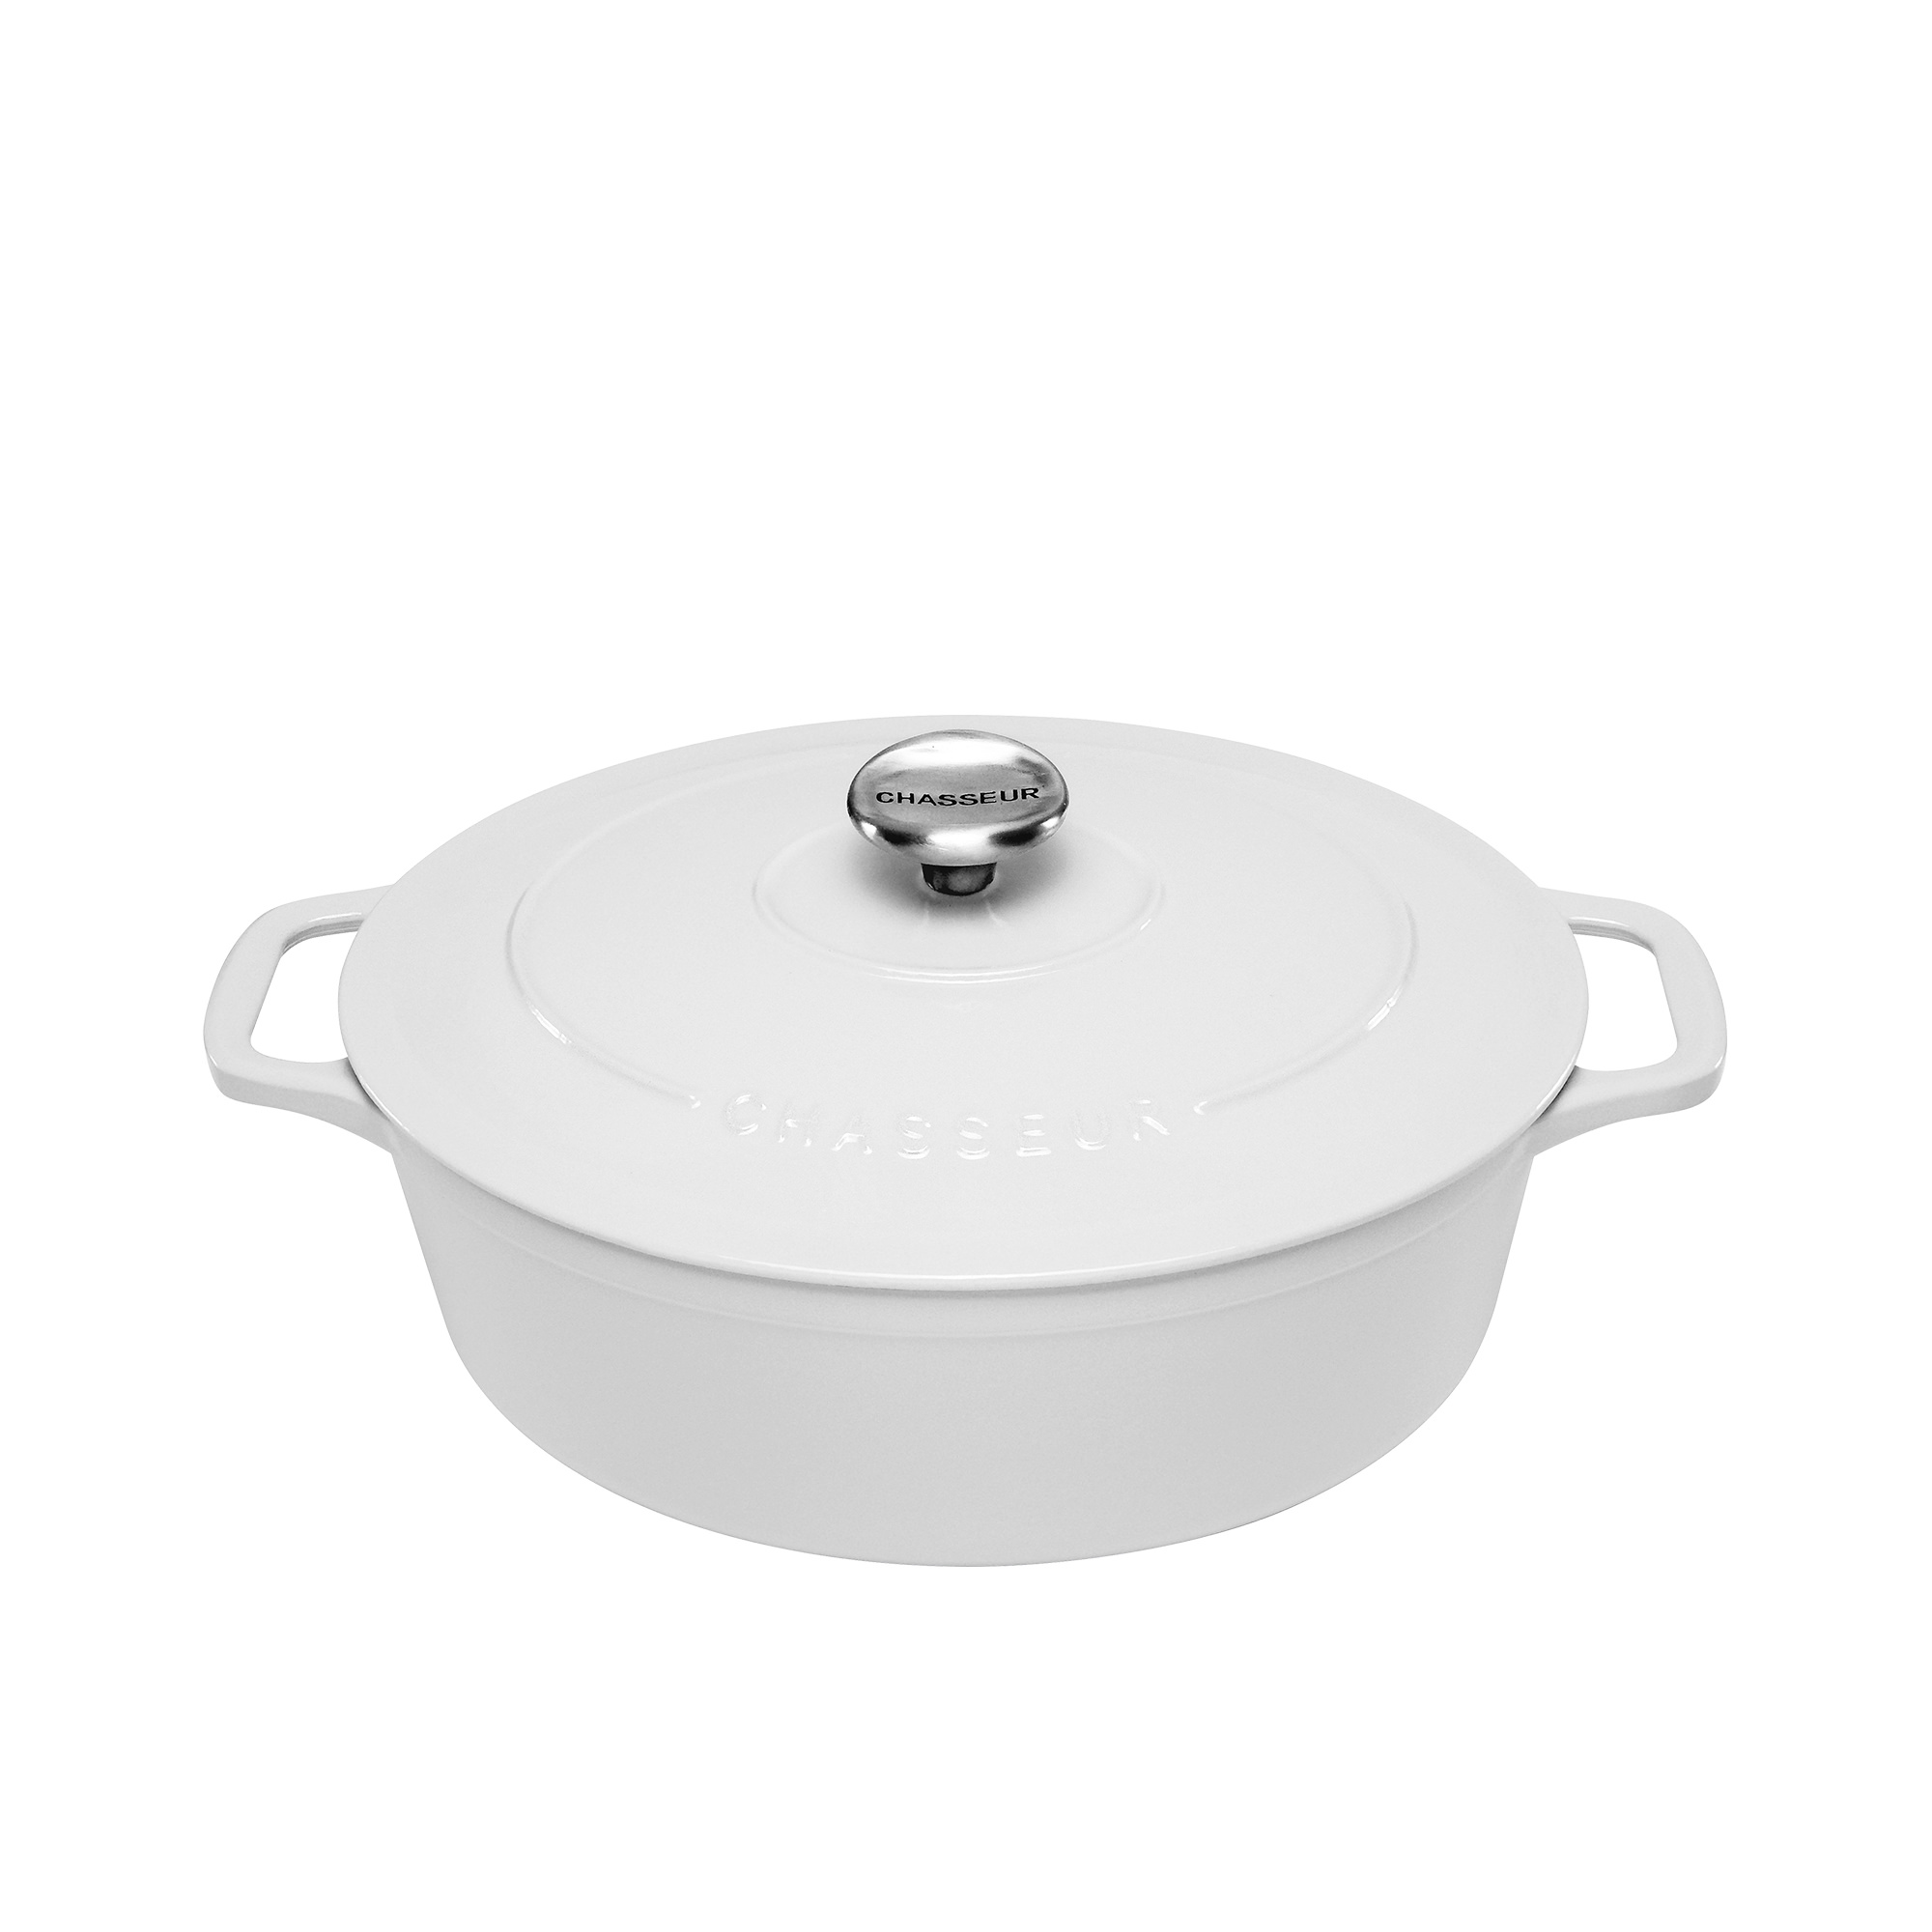 Chasseur Oval French Oven 27cm - 4L Brilliant White